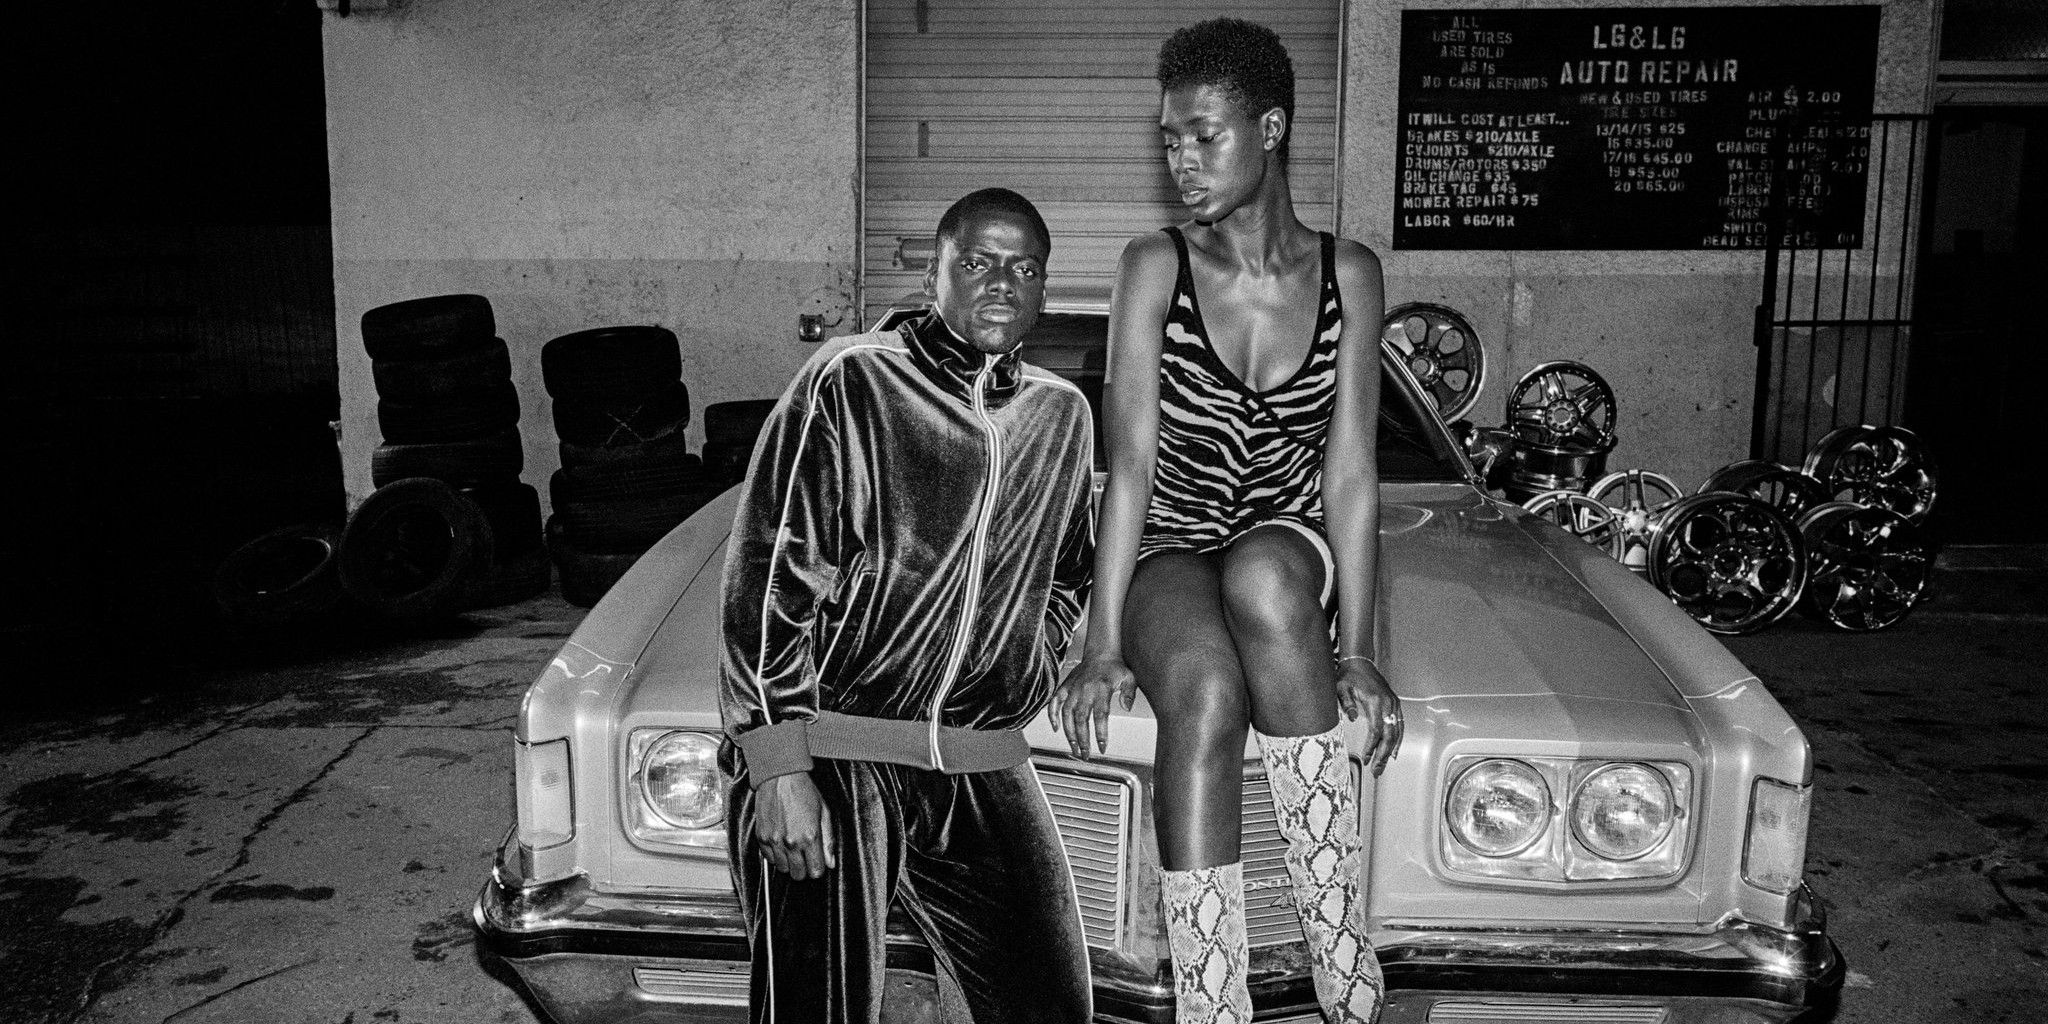 Queen & Slim Movie Trailer Introduces 'The Black Bonnie & Clyde'